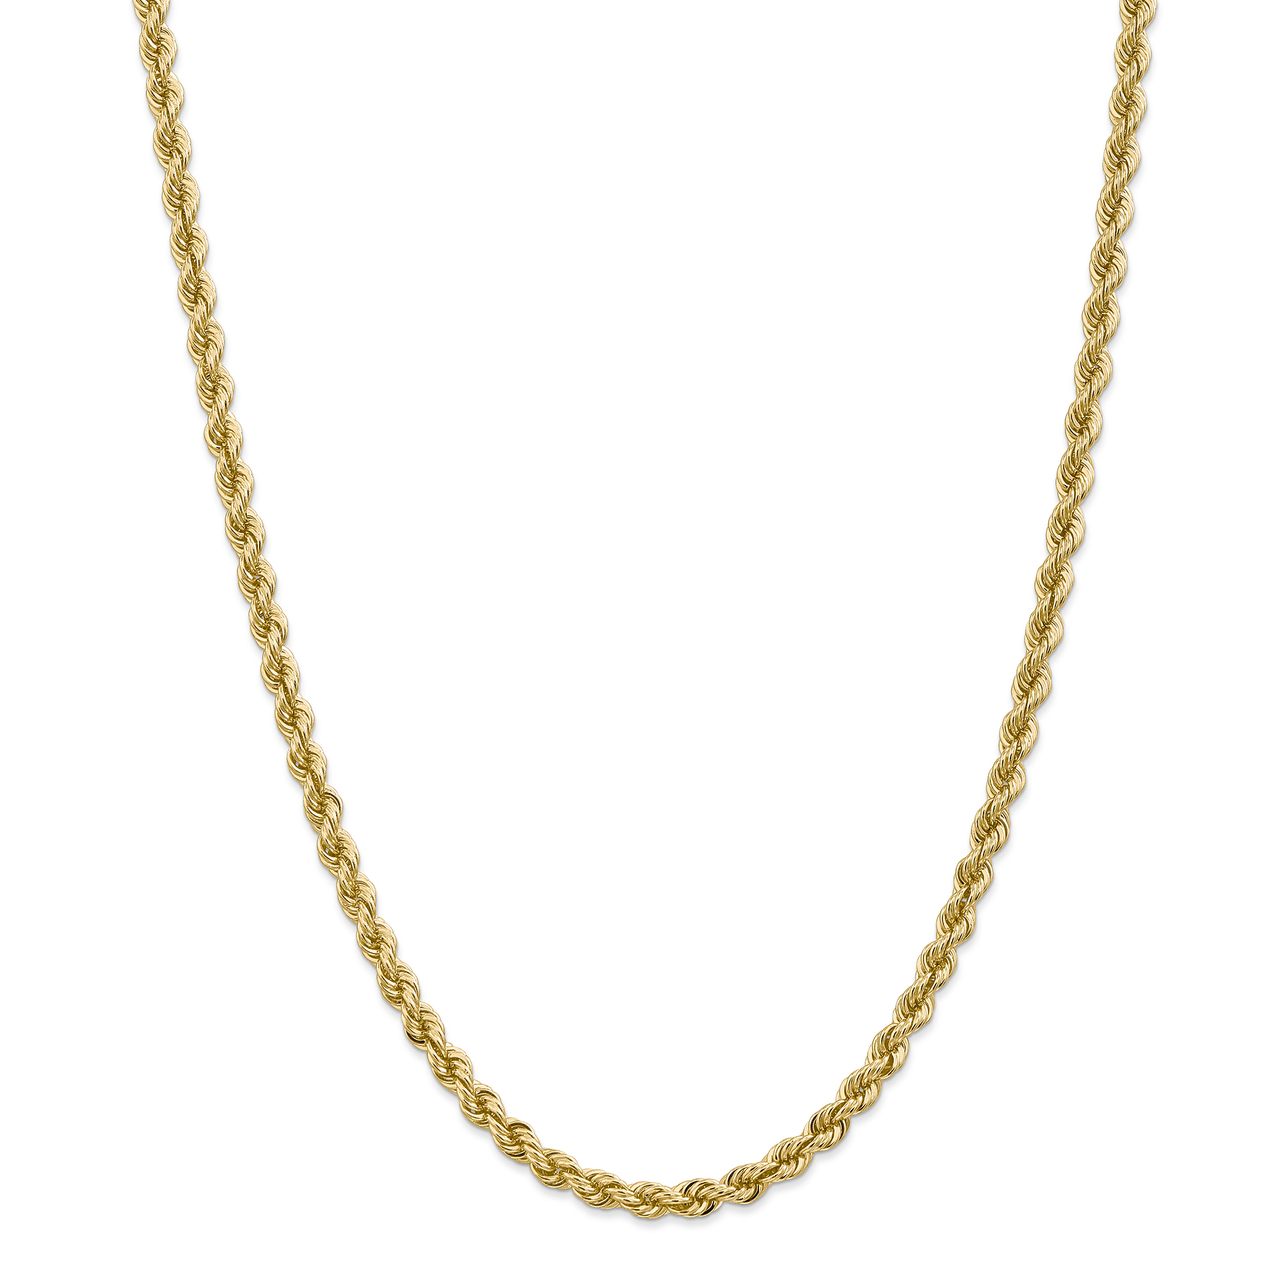 Lex & Lu 14k Yellow Gold 5mm Handmade Regular Rope Chain Necklace or Bracelet by